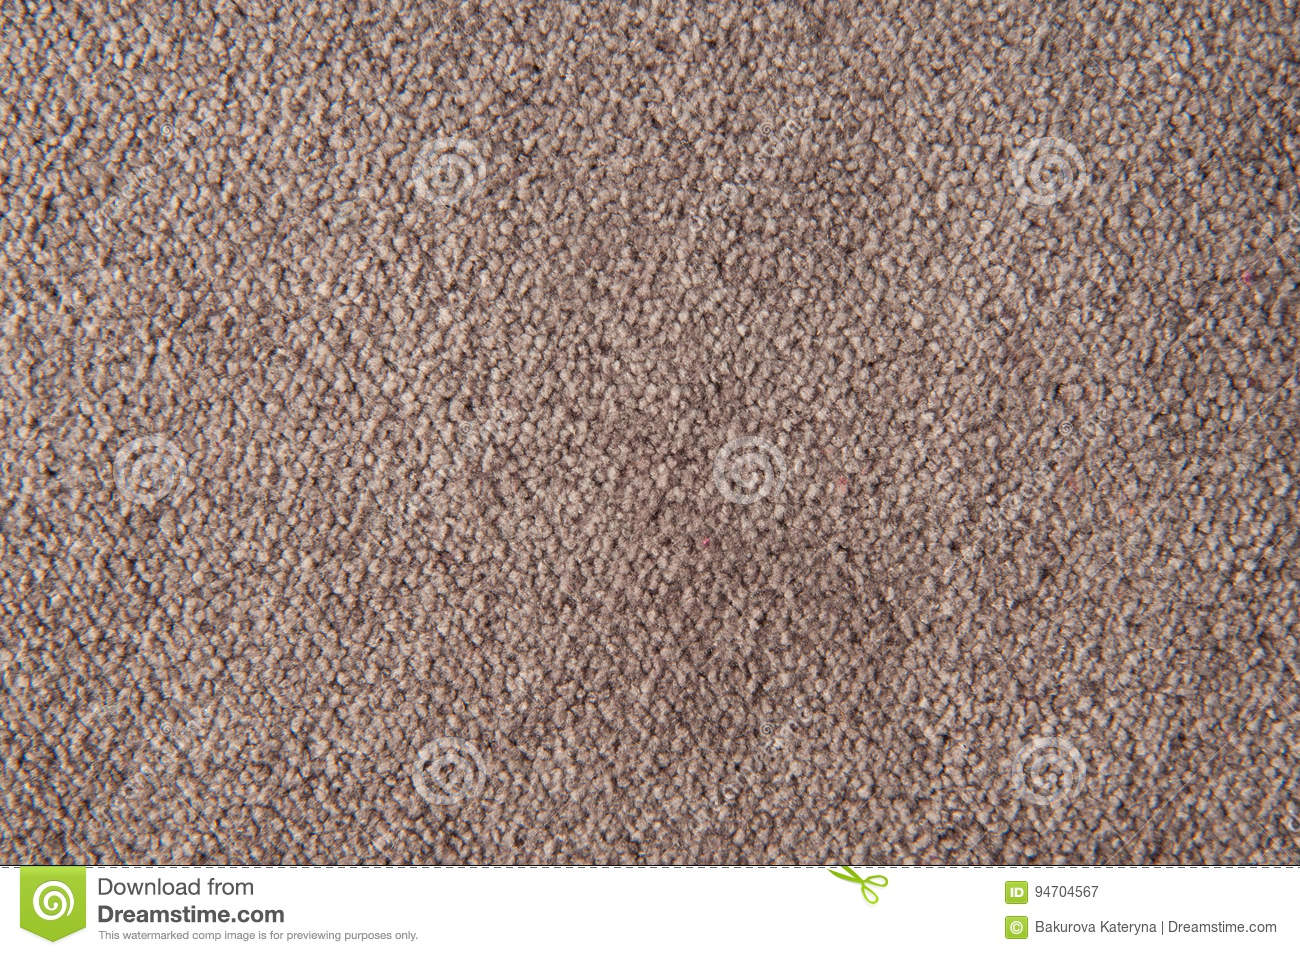 Fabric texture lilac carpeting